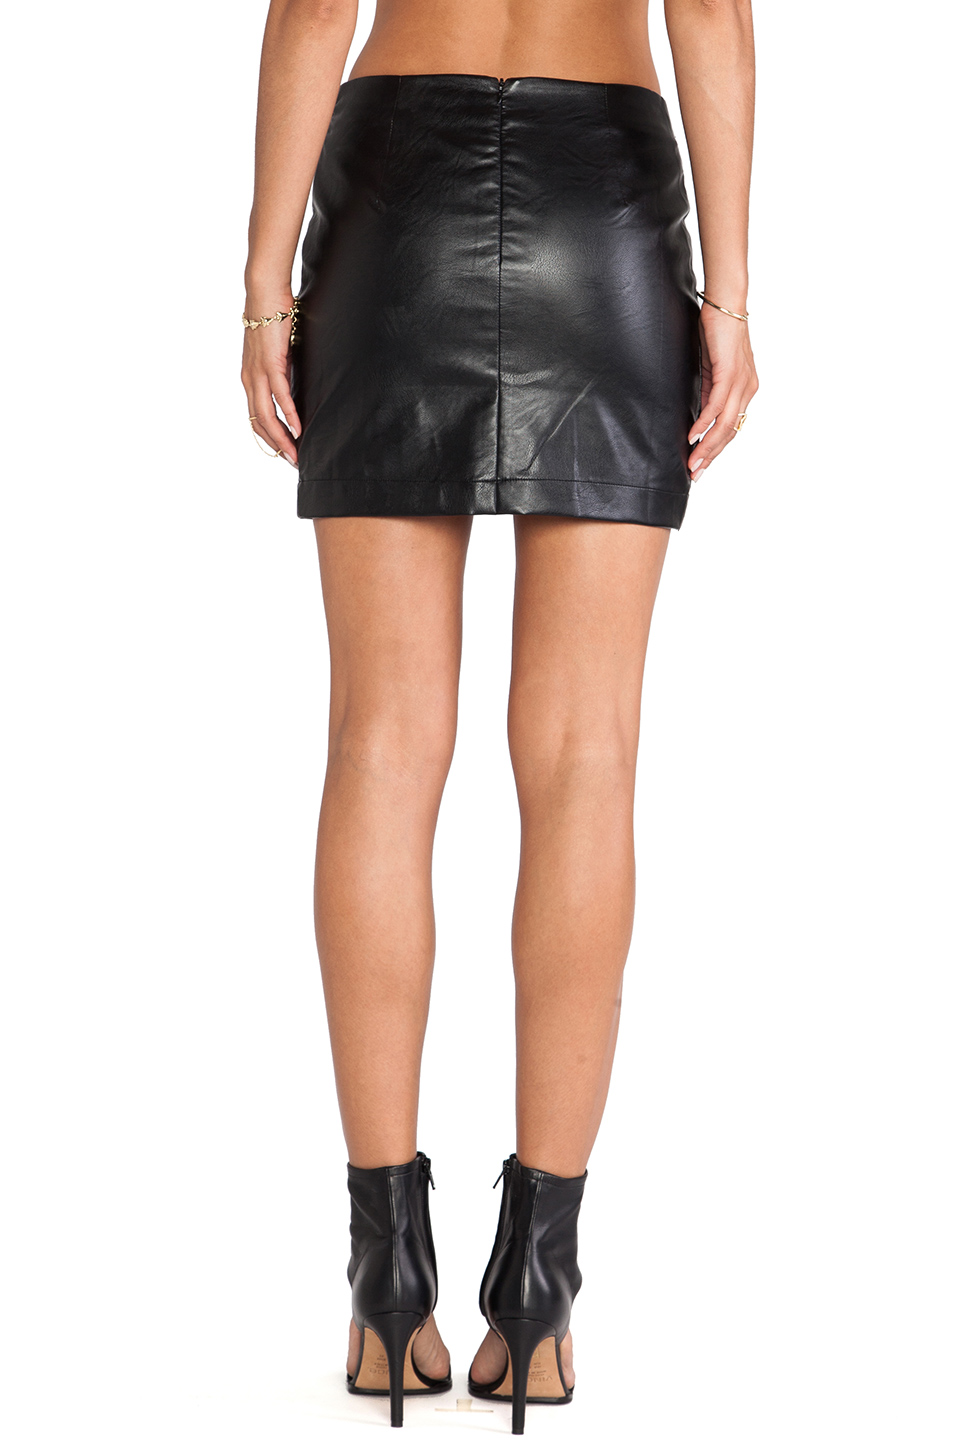 Bless'ed are the meek fracture skirt in black from revolveclothing.com